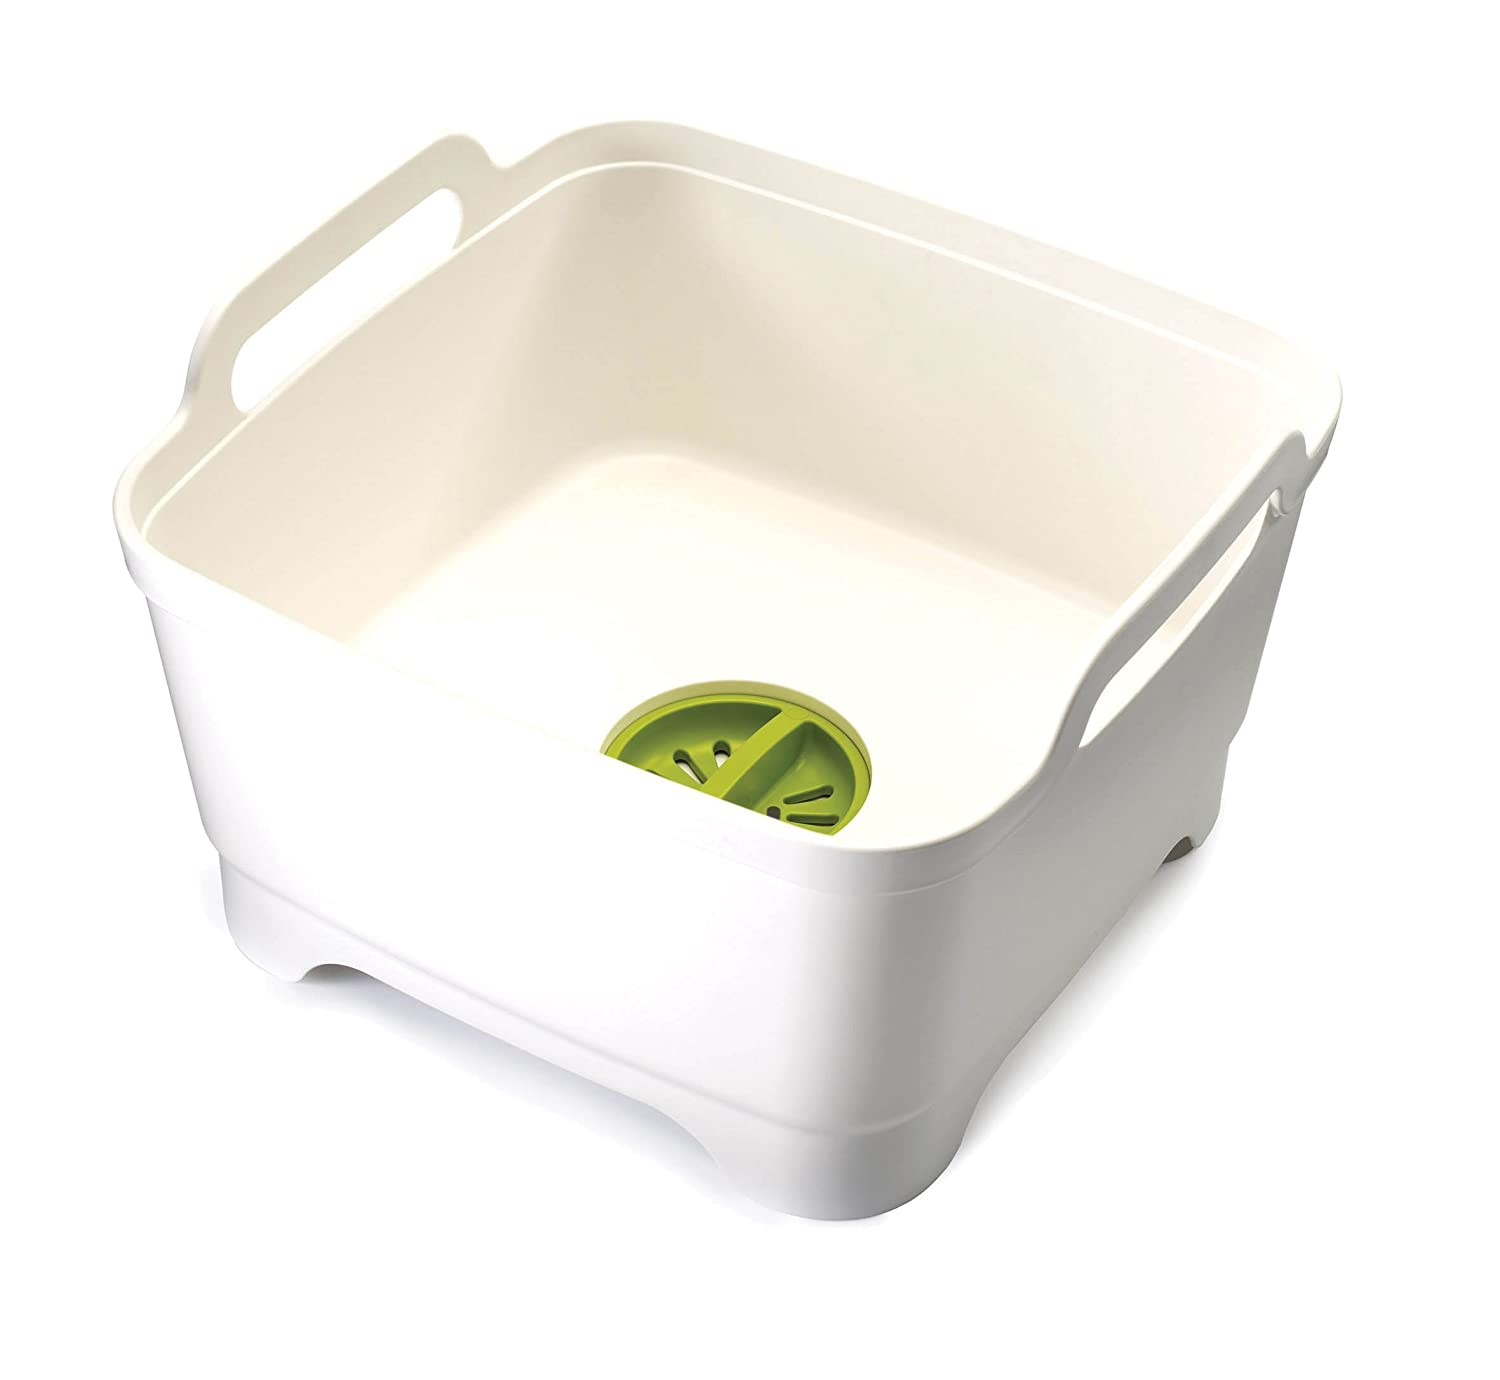 Joseph Joseph 85055 Wash & Drain Wash Basin Dishpan with Draining Plug Carry Handles 12.4-in x 12.2-in x 7.5-in, White